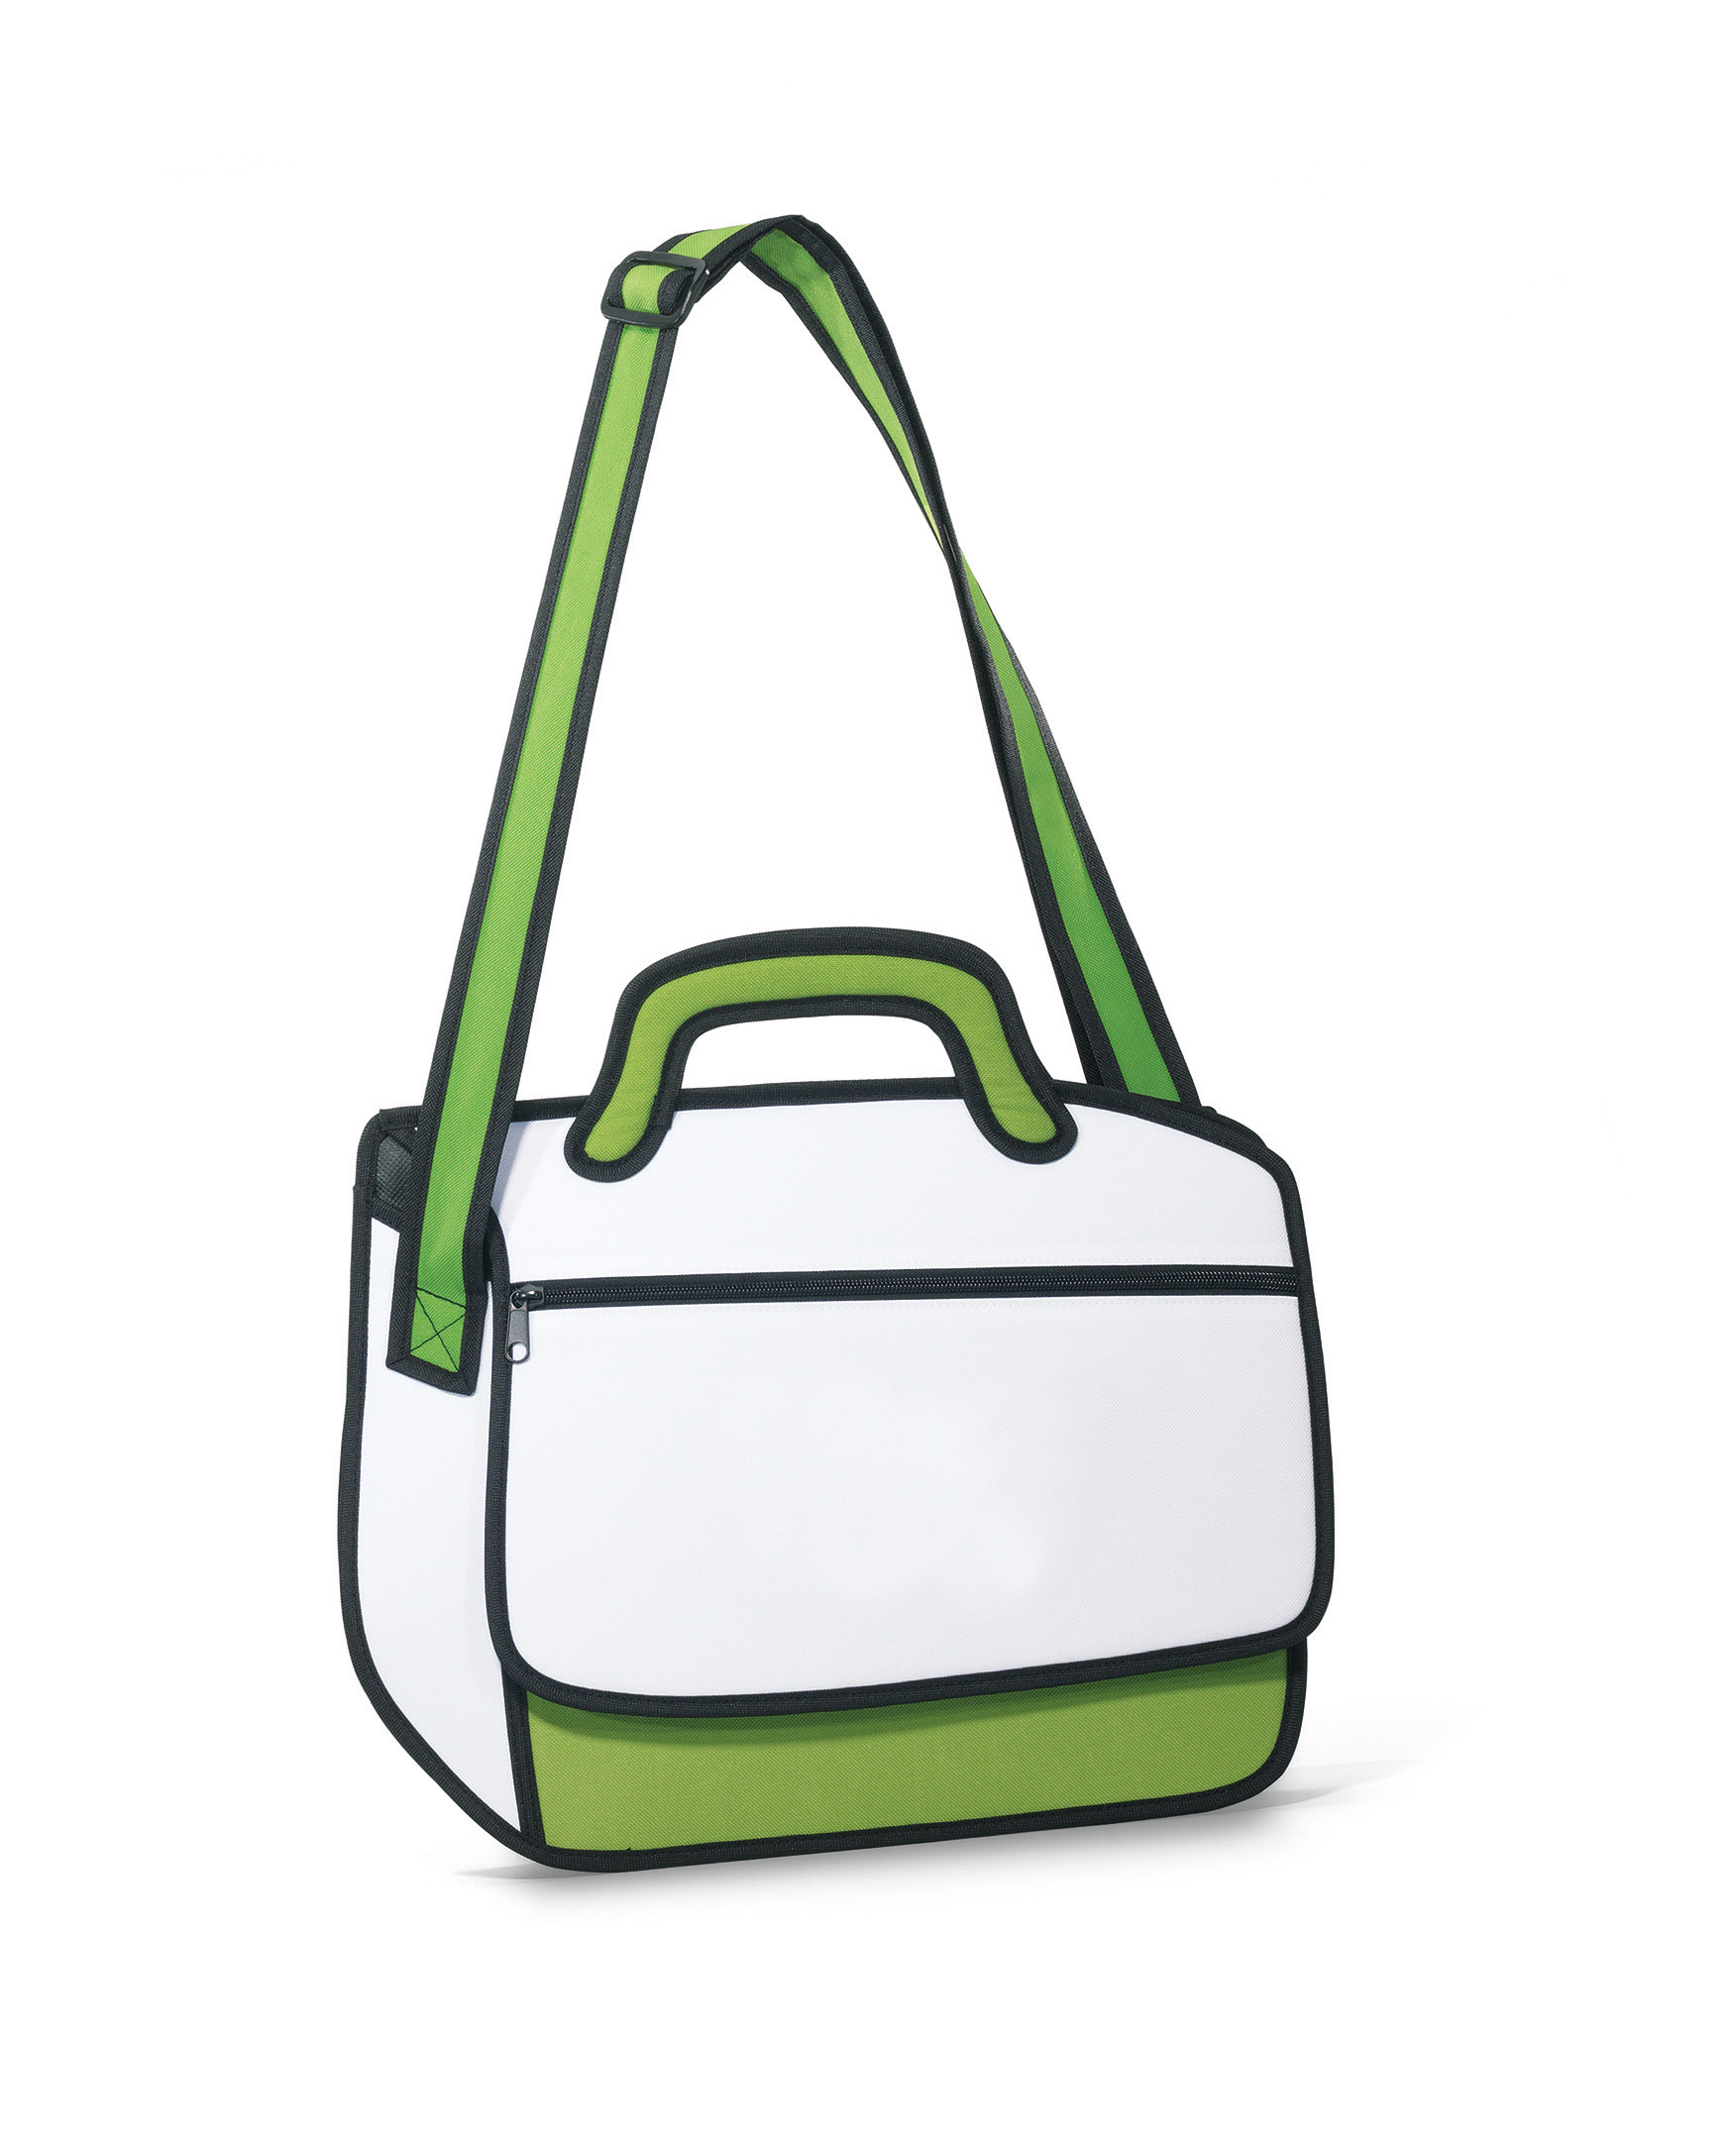 The Gemline Sketch Messenger Bag Which Is Available For Purchase At  Amazon.com Is THE Bag To Have! I Love The Vibrant Colors And That It Can  Hold All Of My ...